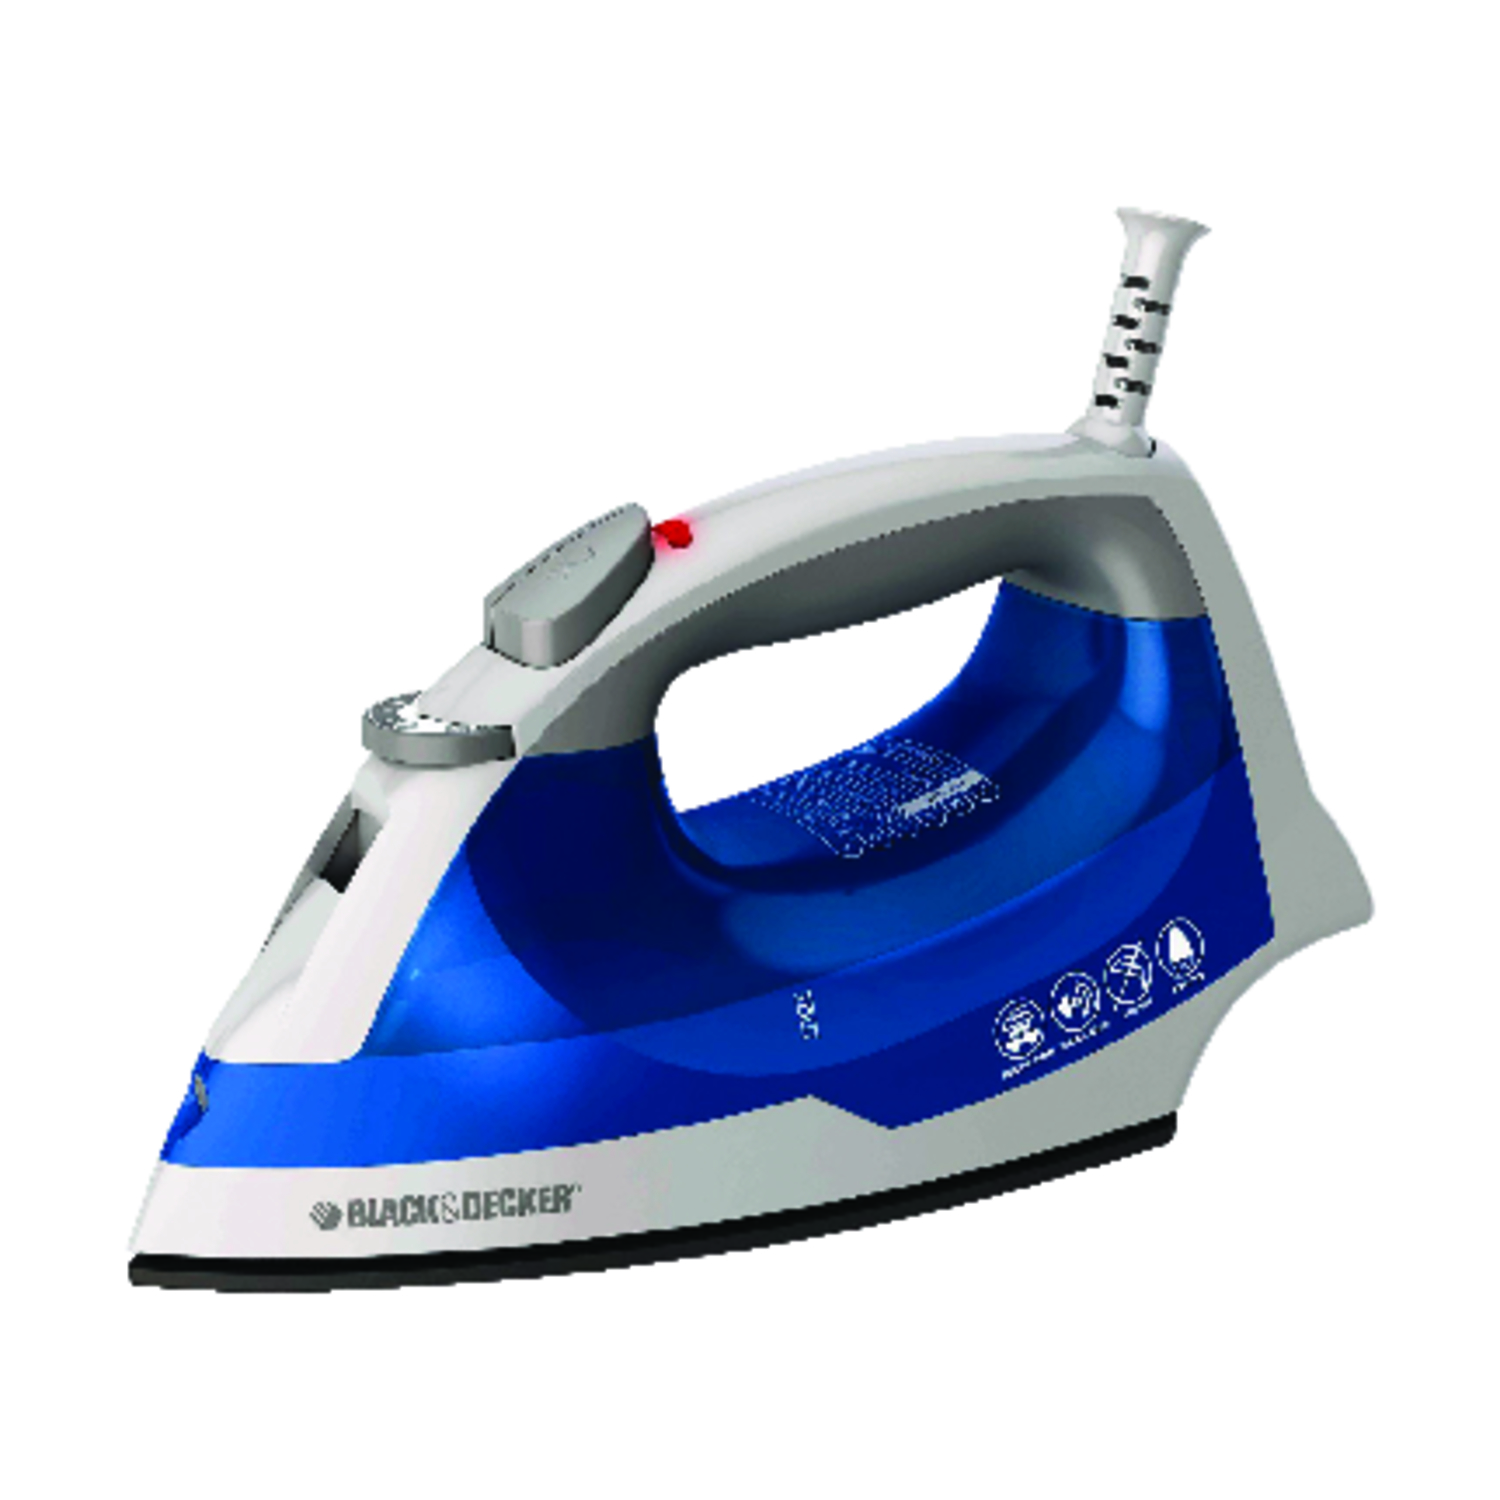 Black and Decker  5 oz. Steam Iron